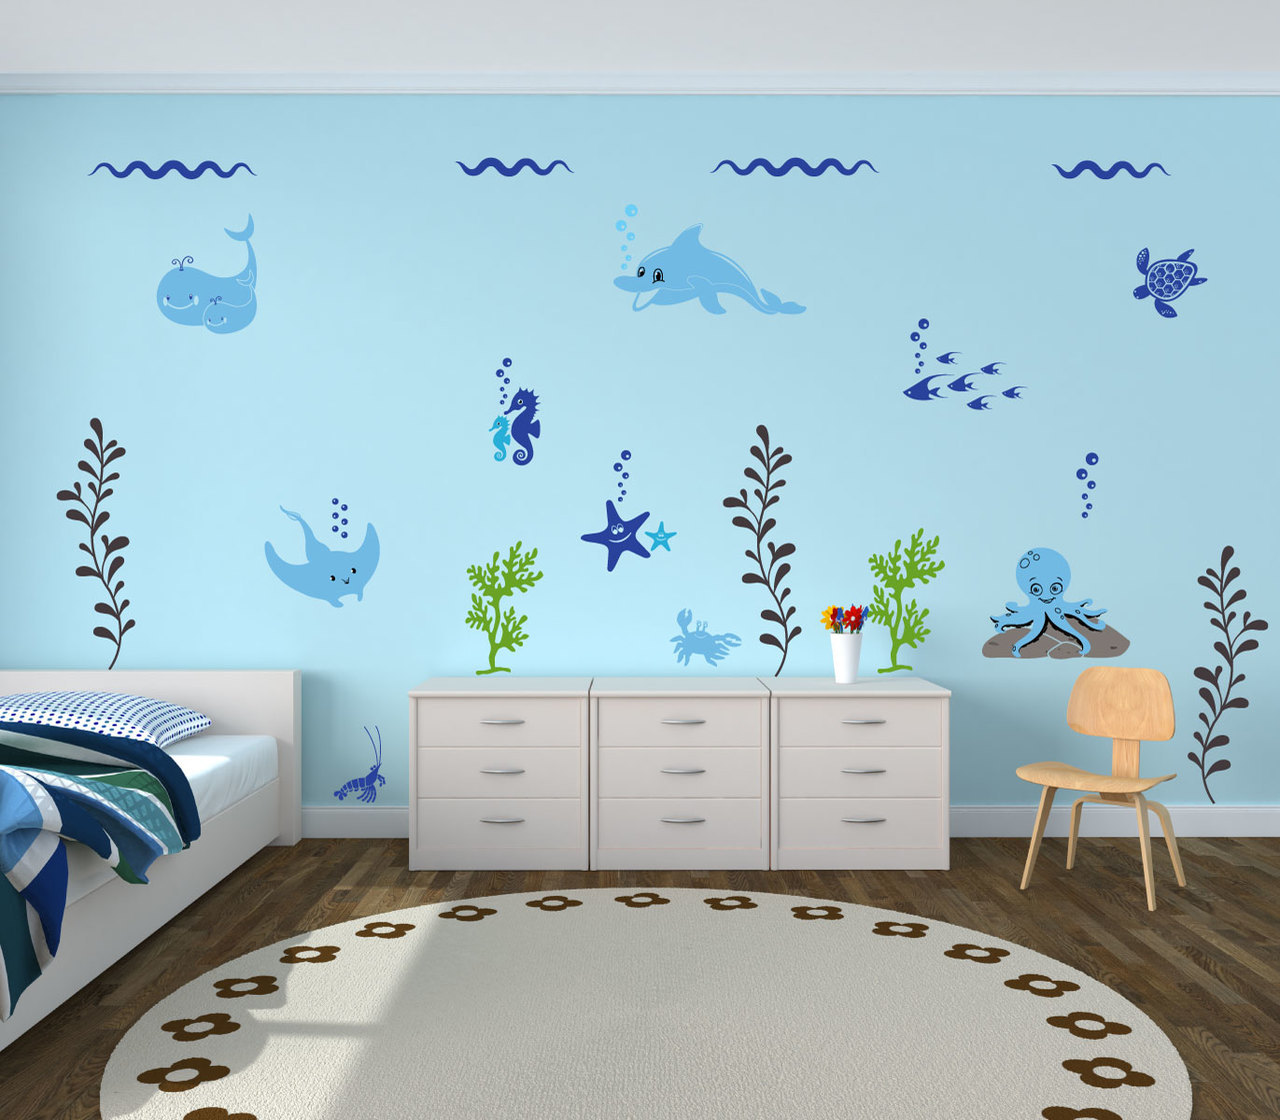 Ocean Inspired Decorating Ocean Themed Wall Decals For Decorating Kids Bedrooms